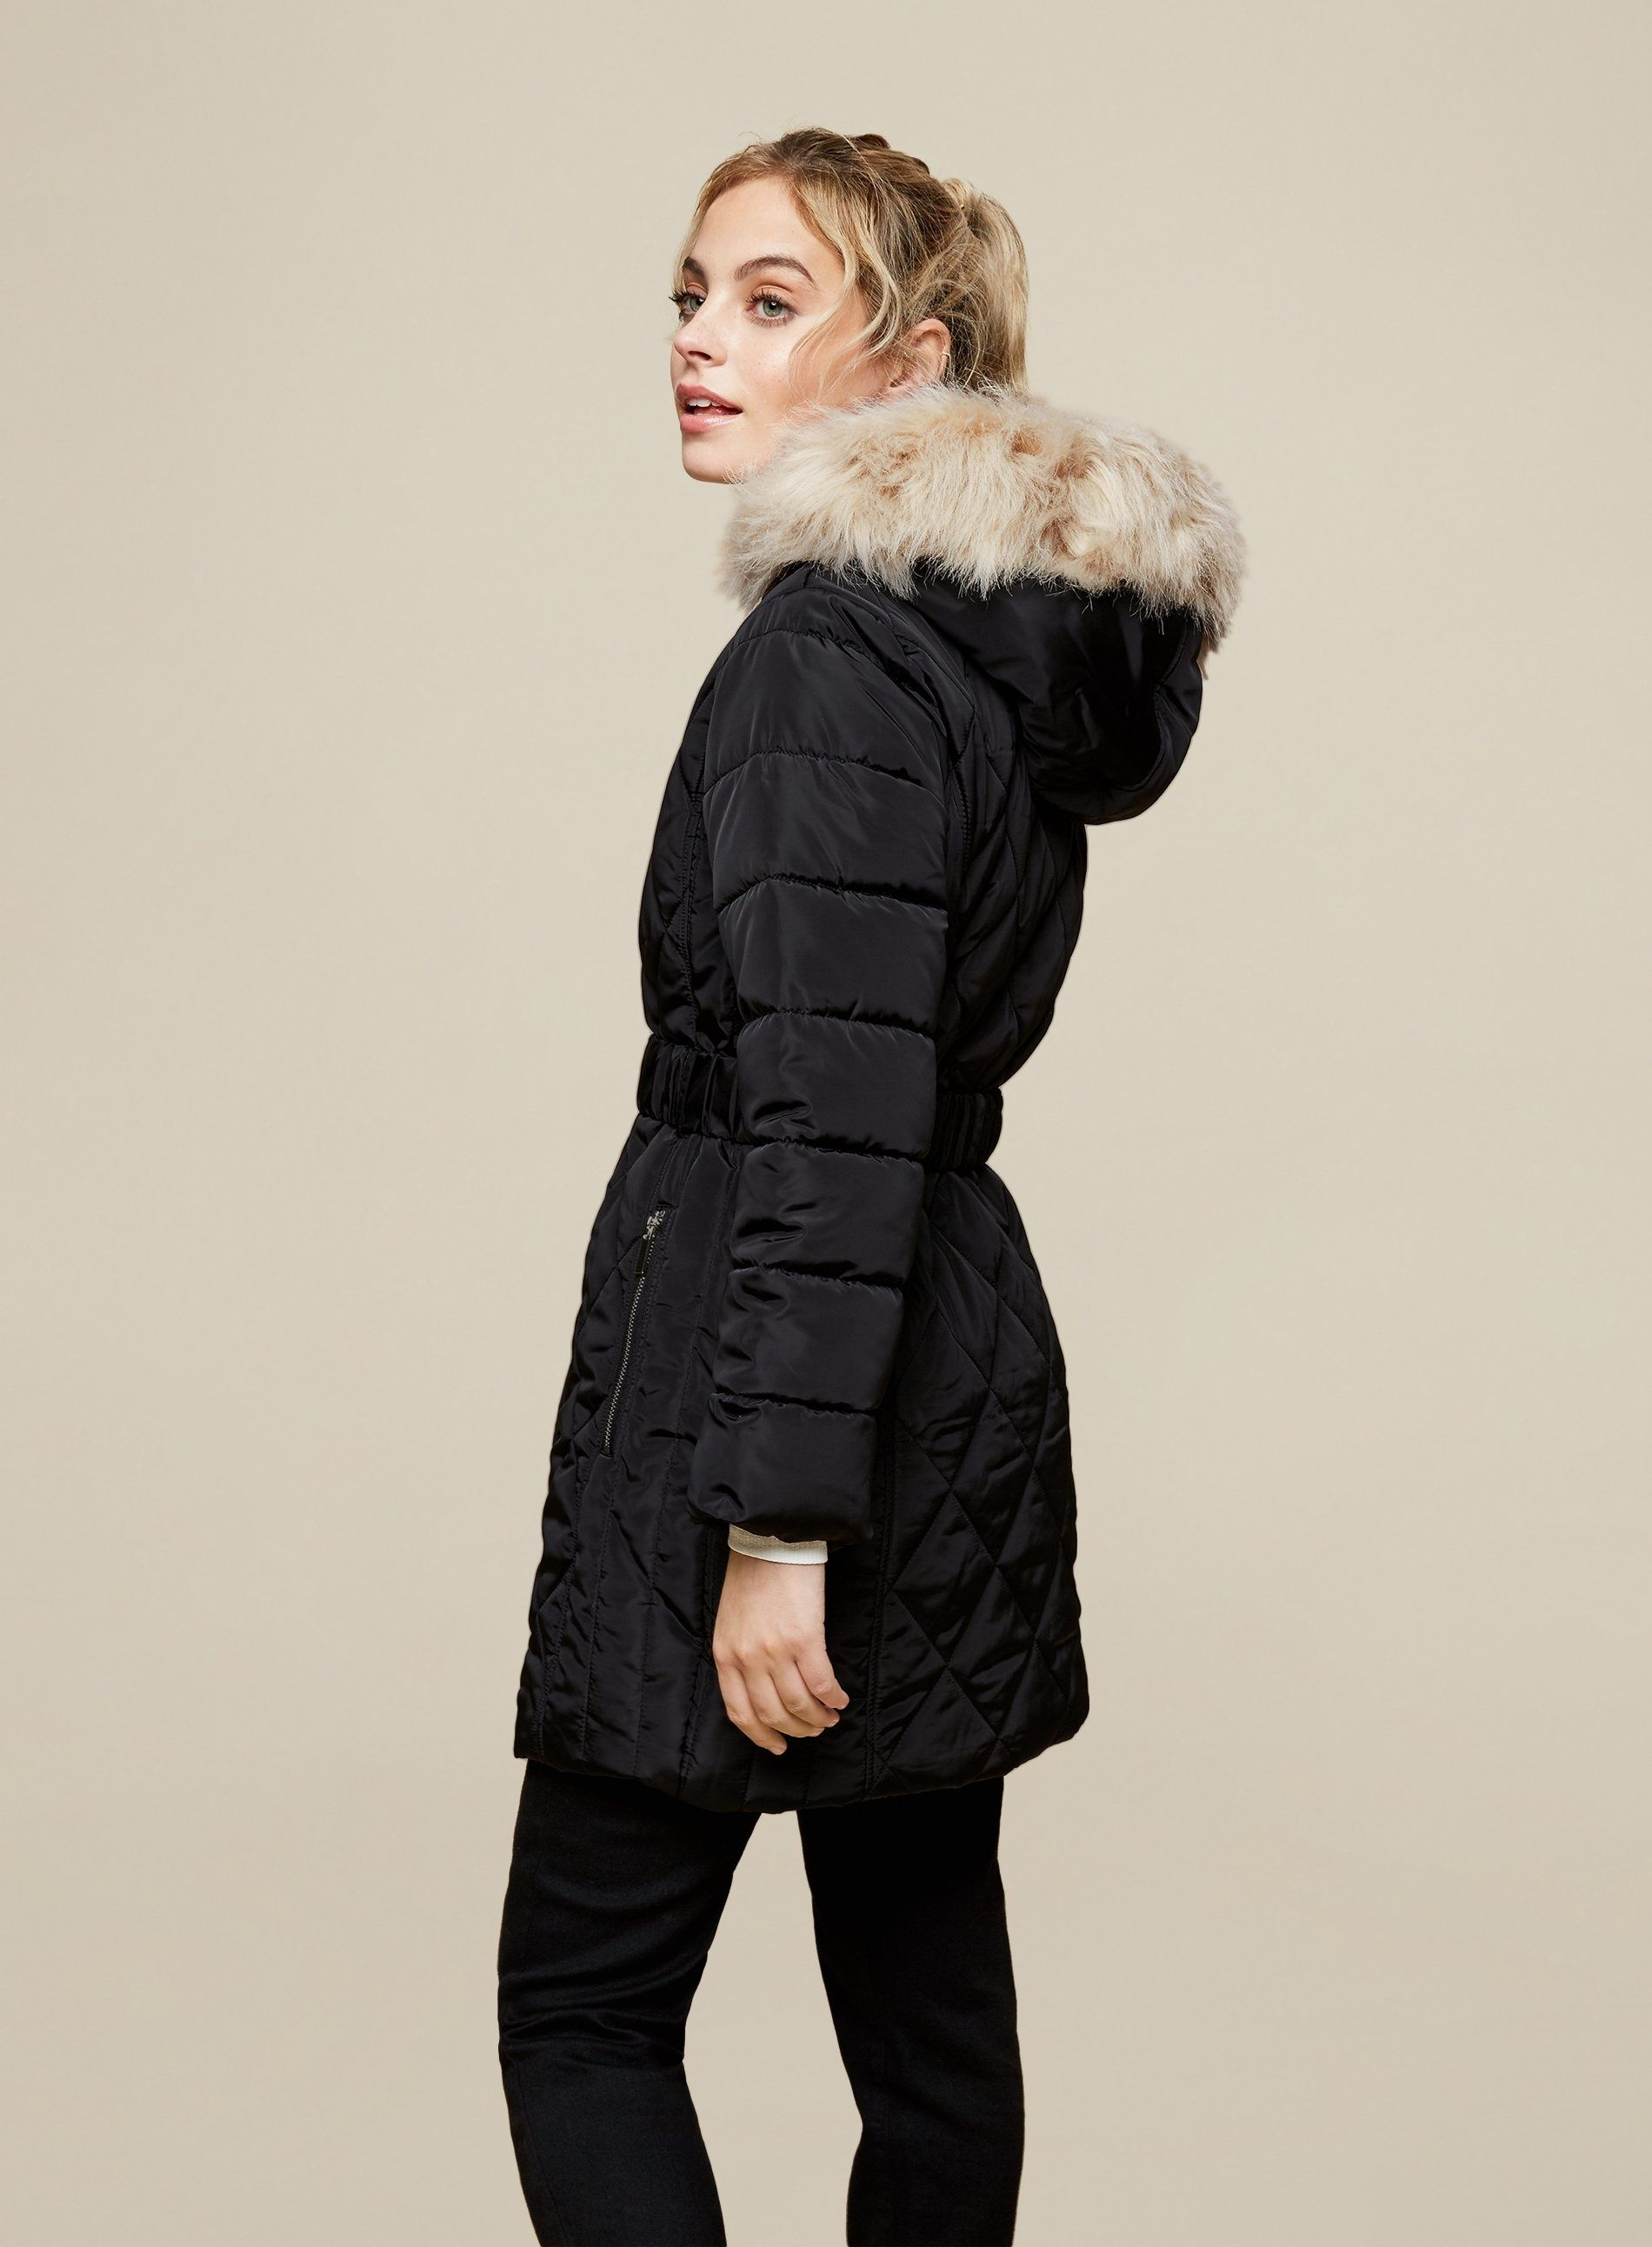 Dorothy Perkins Womens Petite Black Long Quilted Coat Jacket Outwear Top